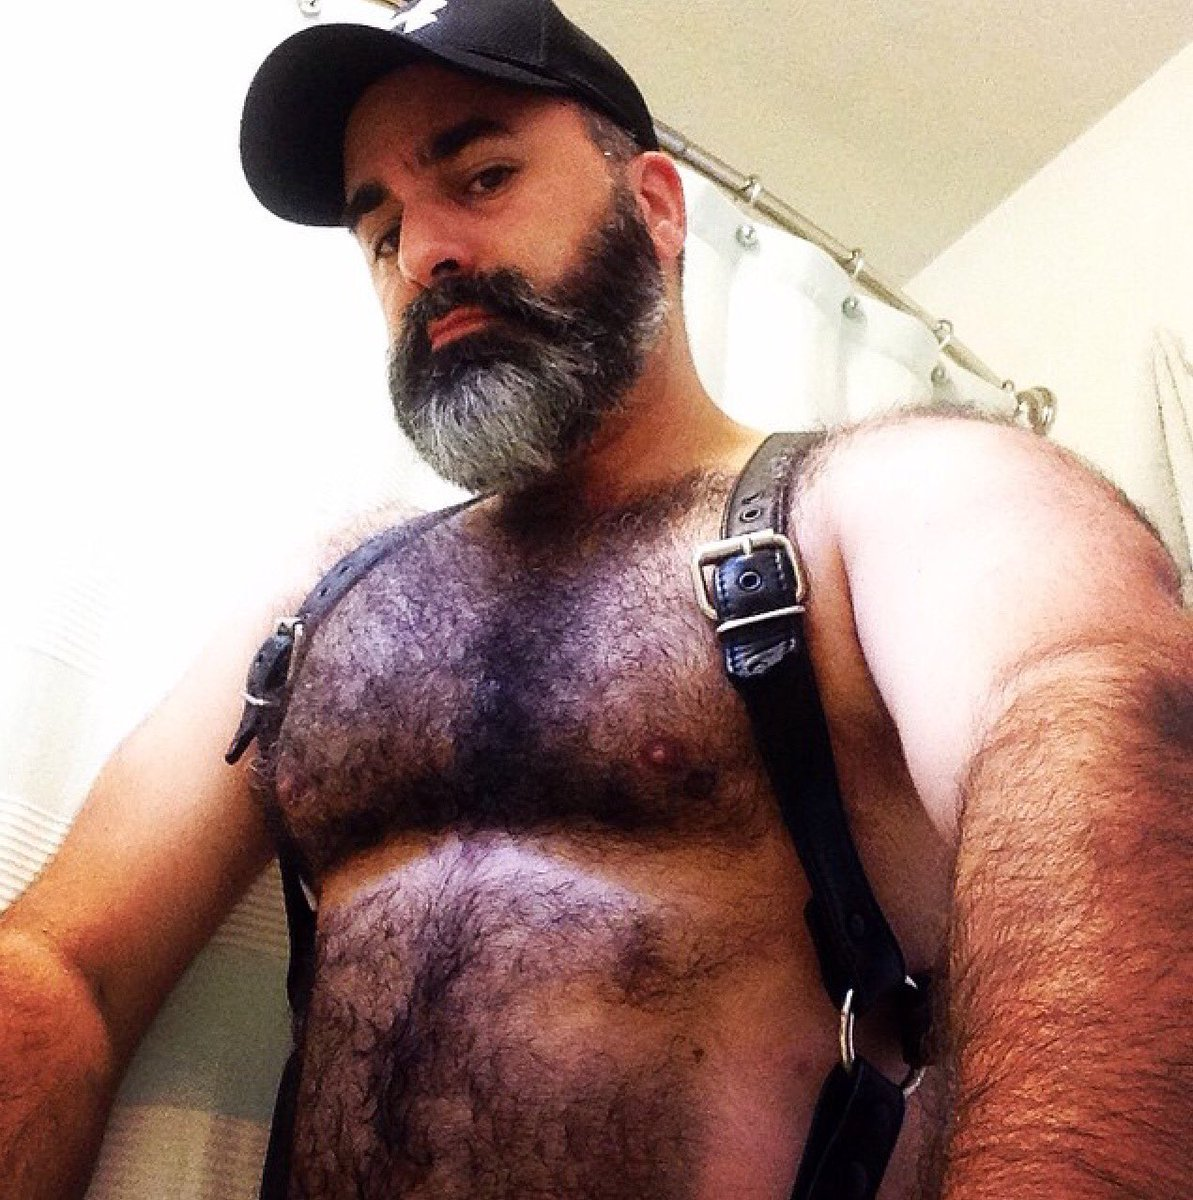 Gay bear men pictures